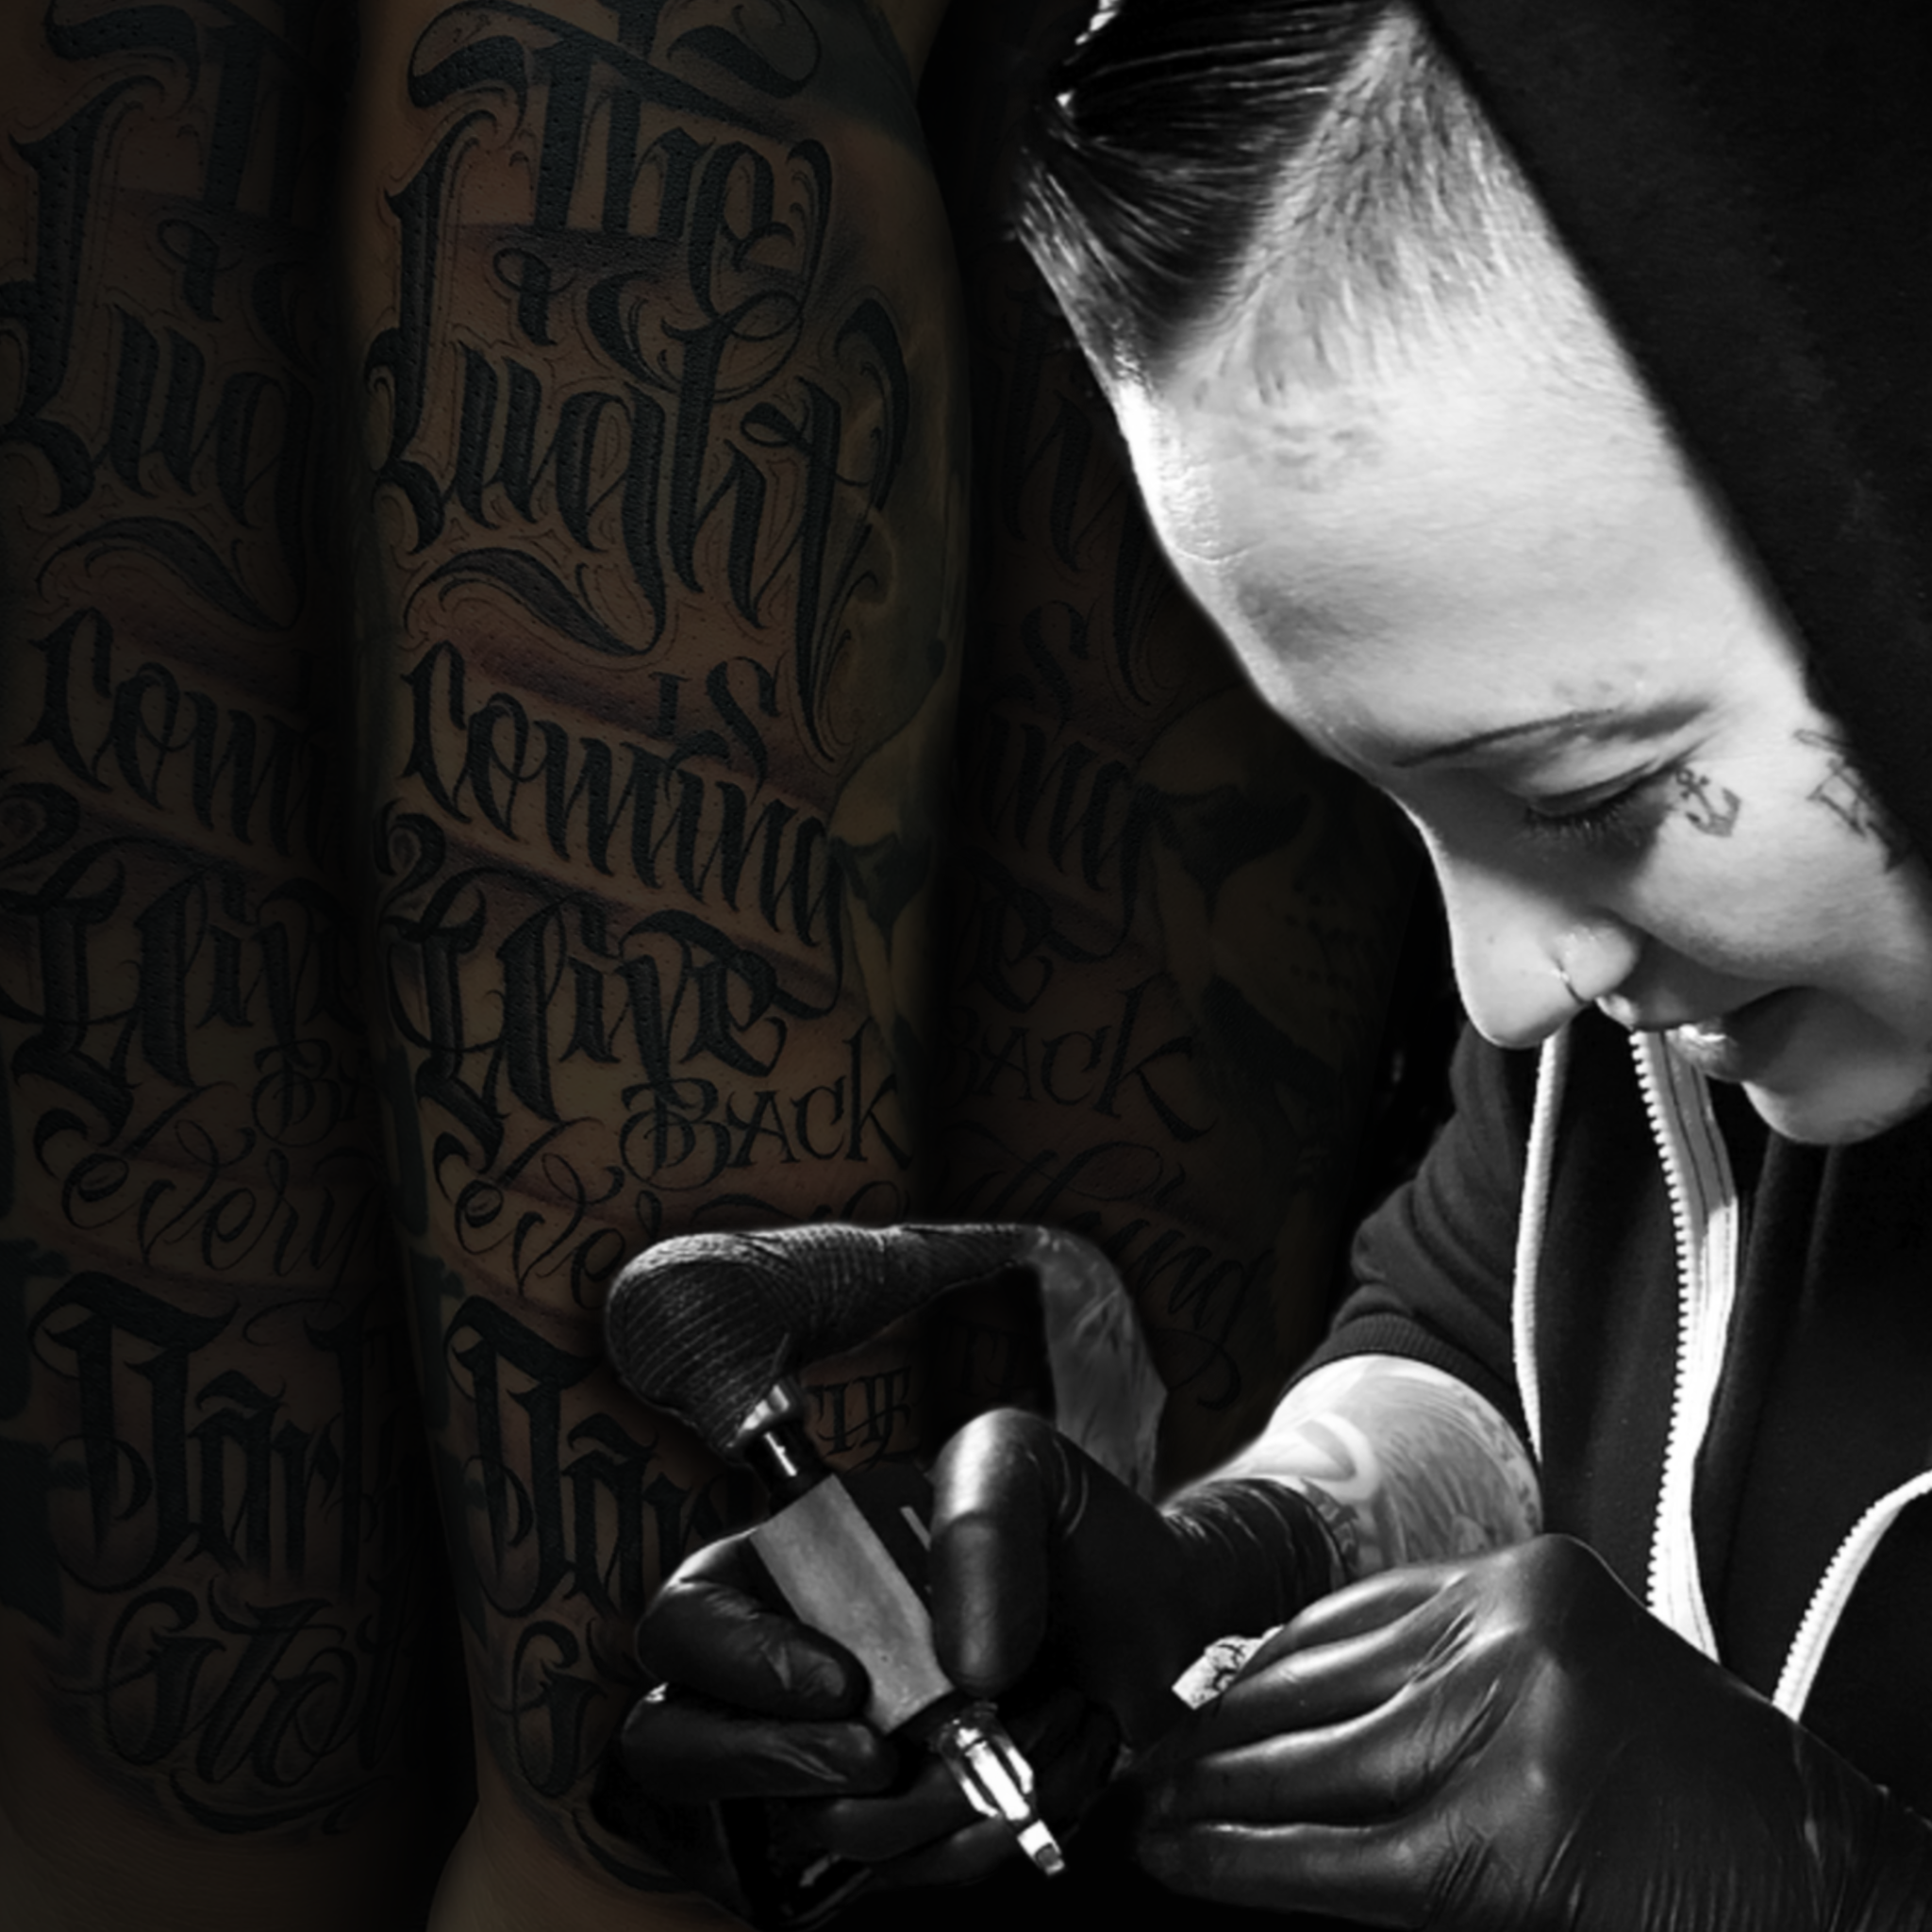 C.J. Quiroz   - Tattoo Artist / Piercer   Specializing in Custom Lettering